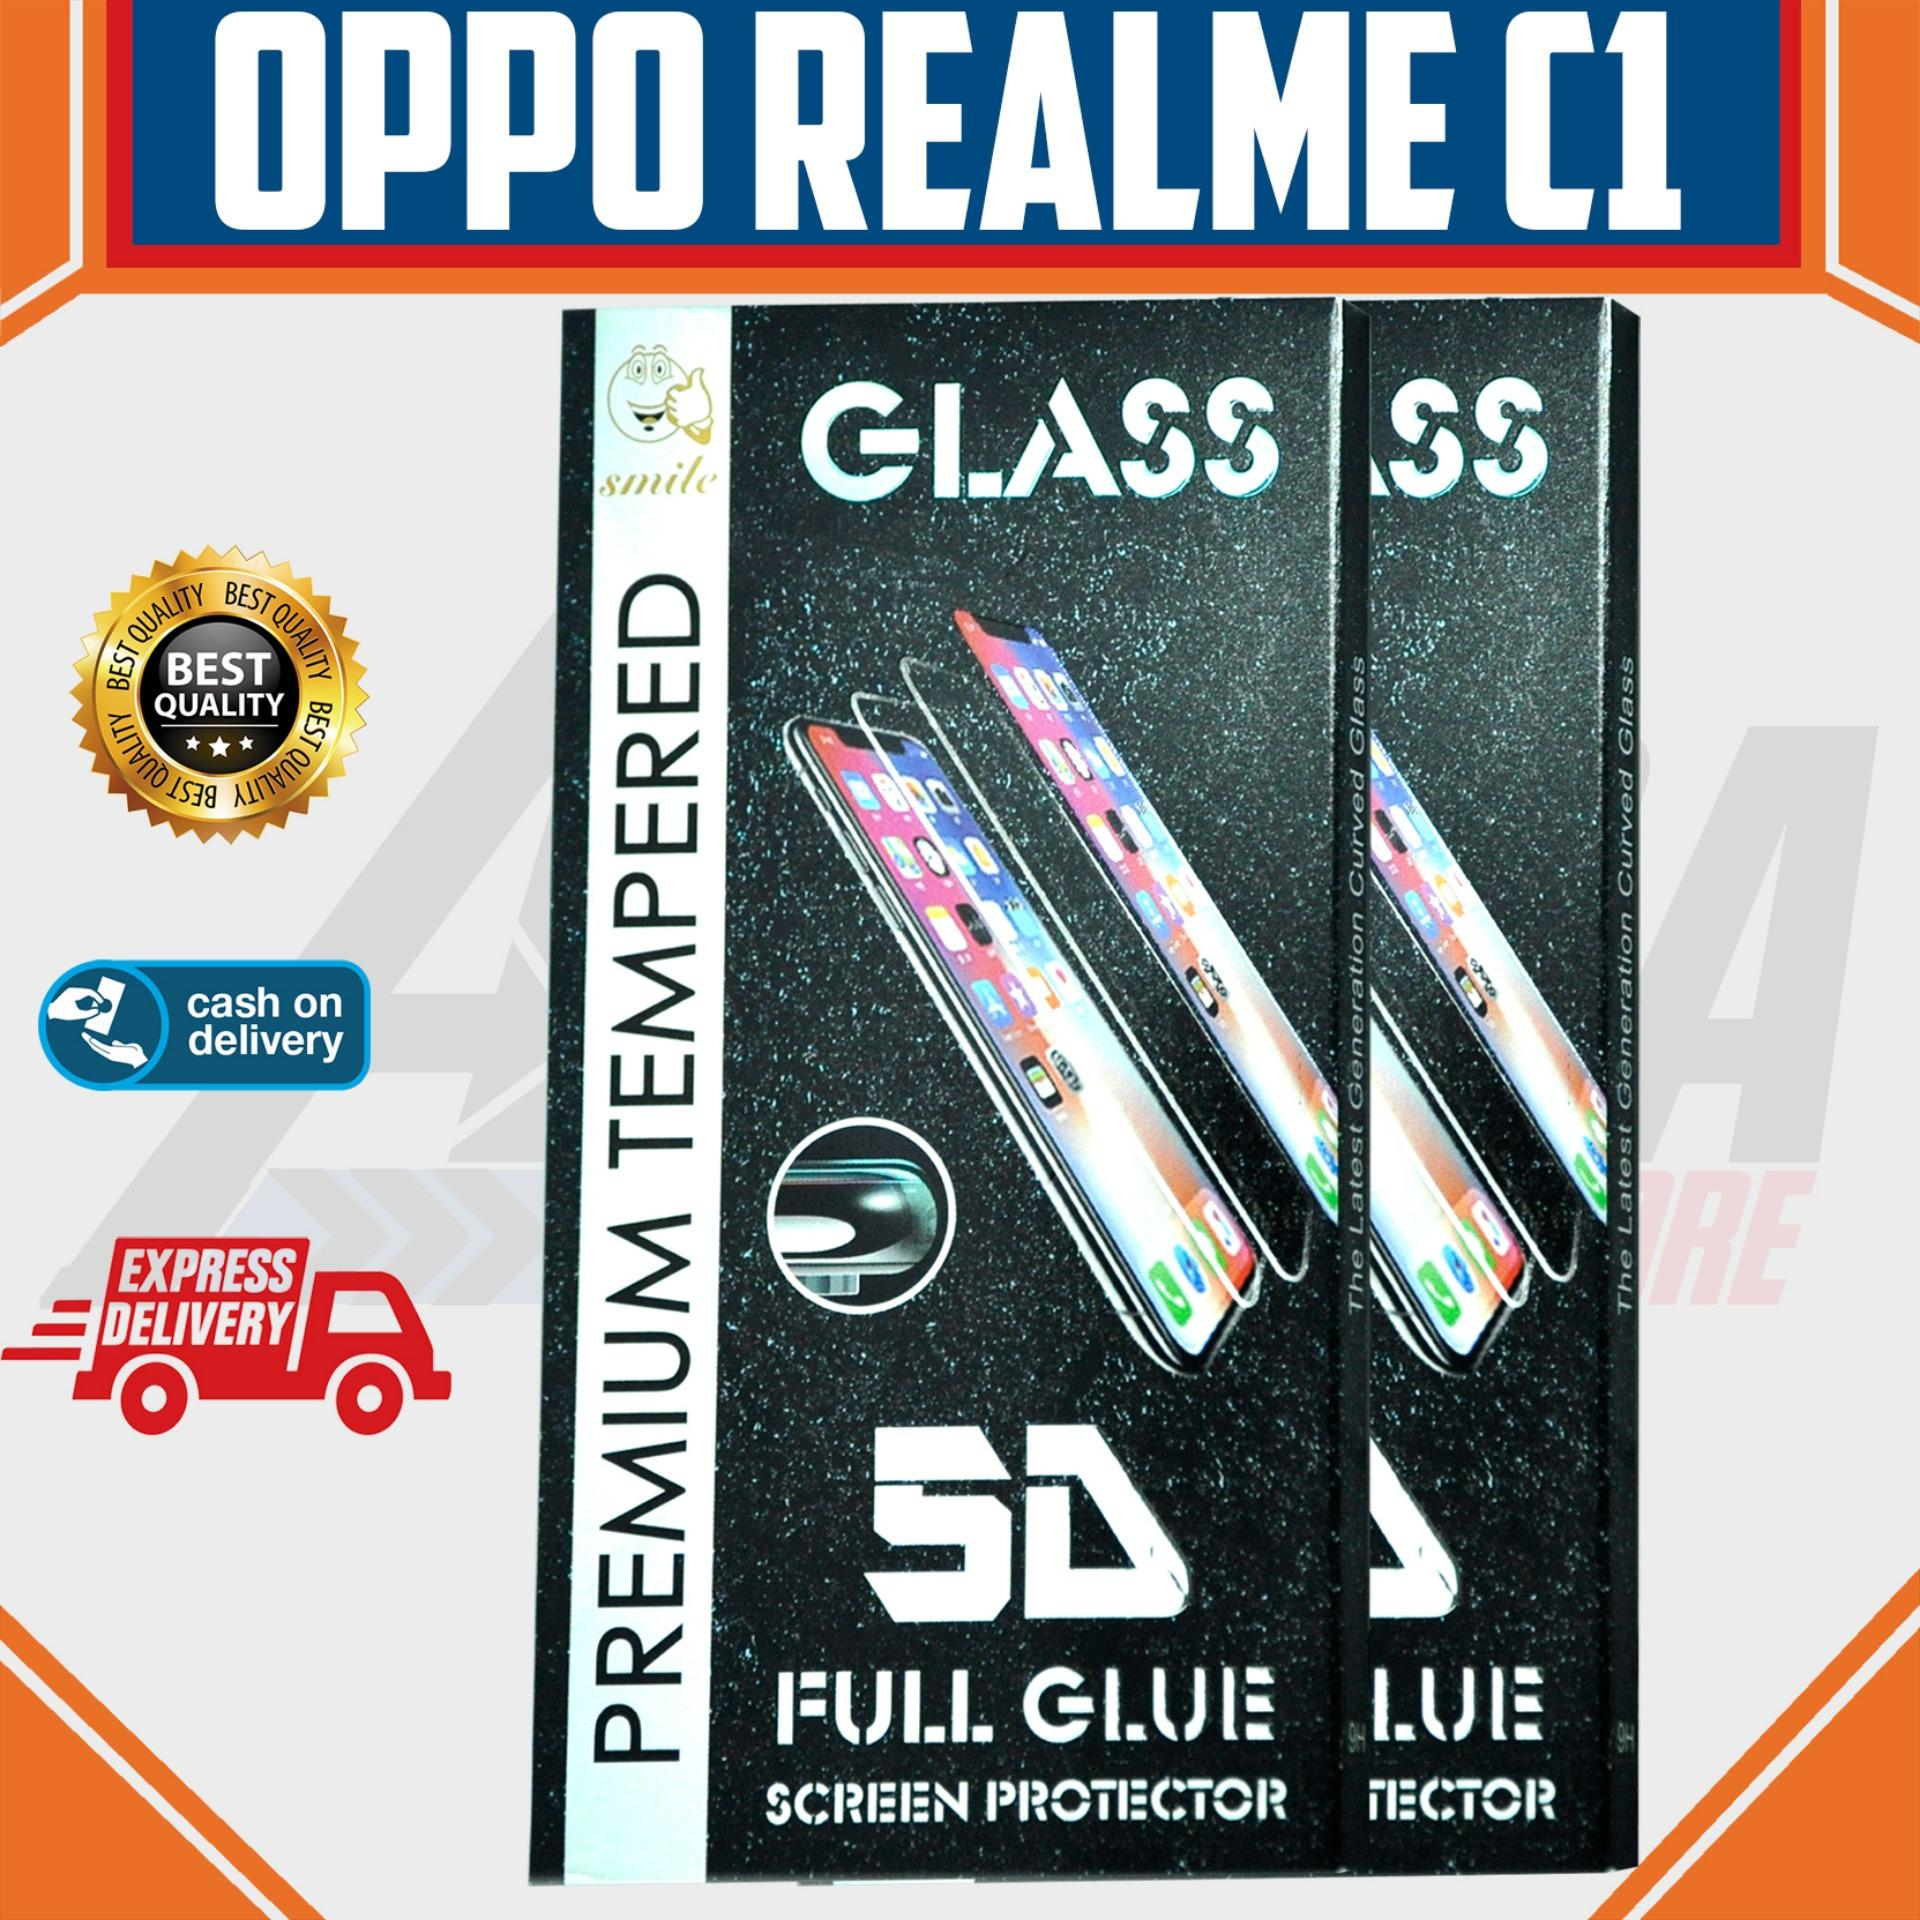 Aldora Tempered Glass Oppo RealMe C1 5D Full Curved Screen Protector Smile Series Premium HD Quality